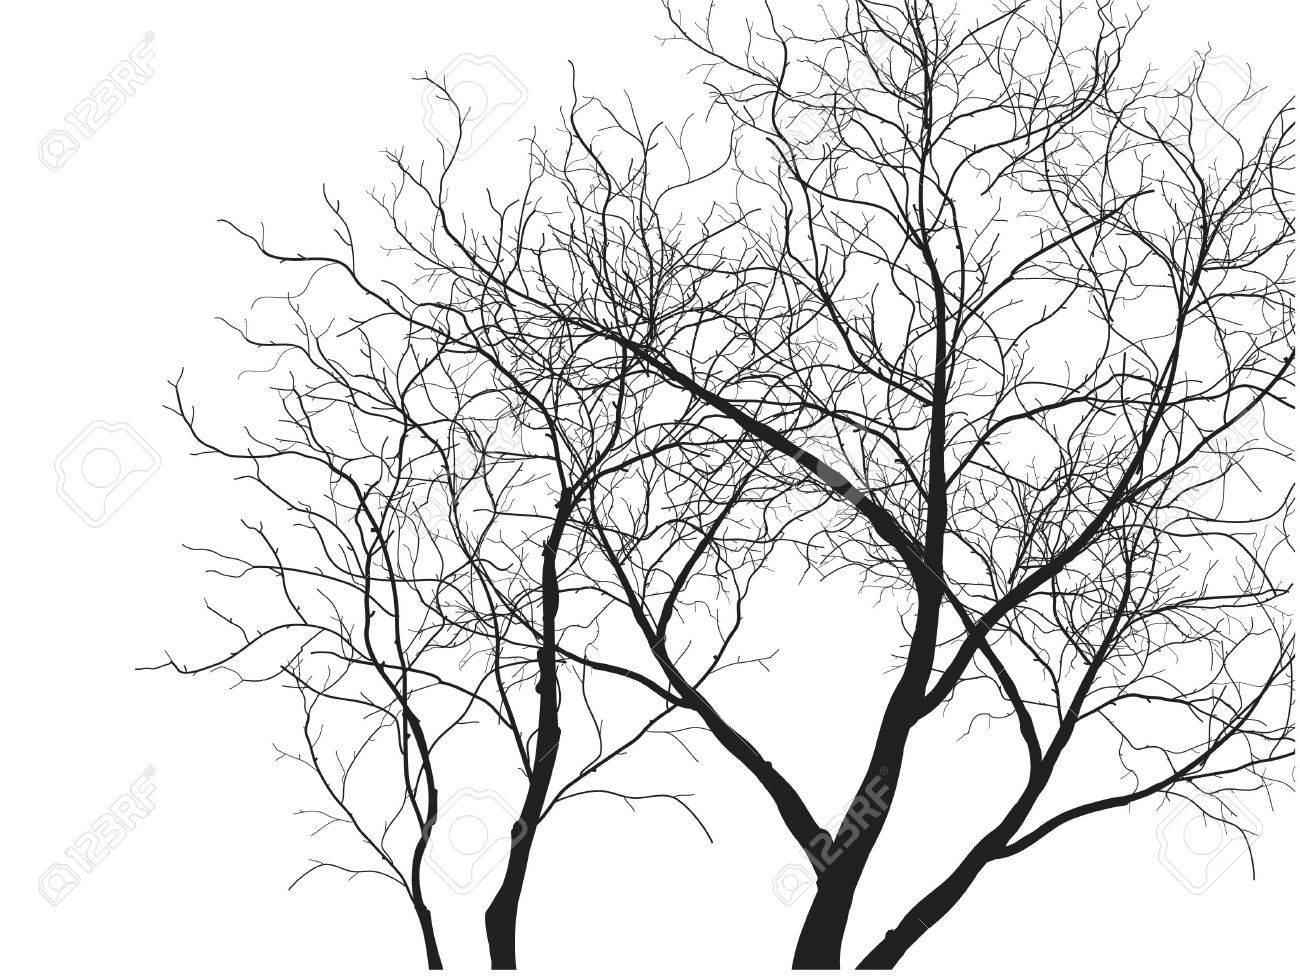 dead tree without leaves vector illustration sketched eps 10 rh 123rf com Dead Oak Tree Vector dead tree vector free